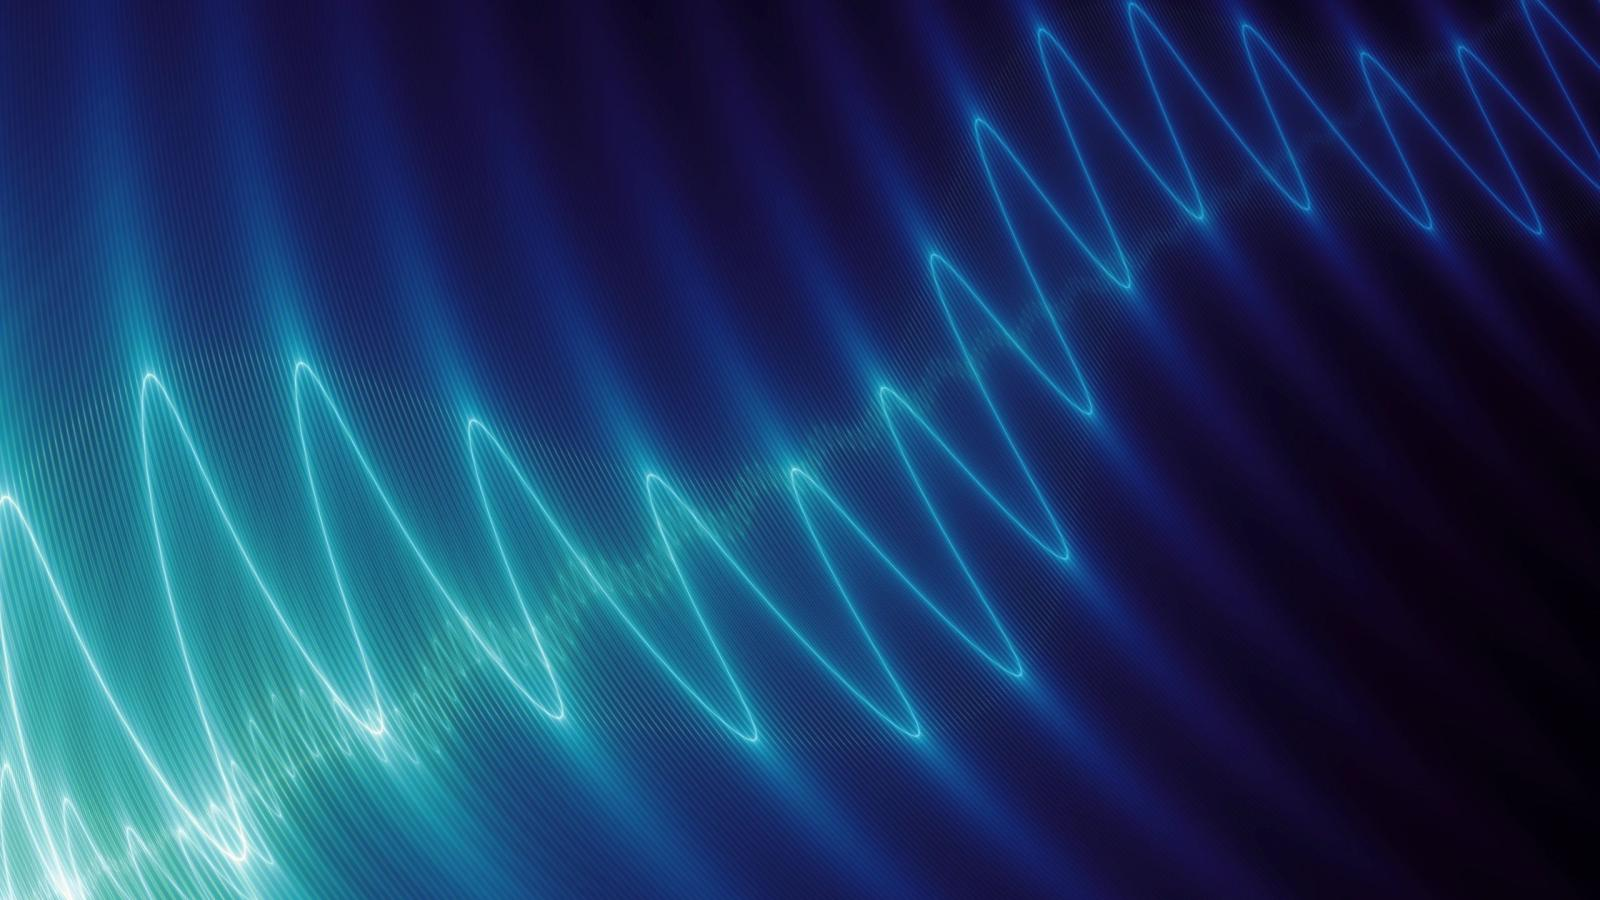 fractal-waveform-blue-bright-light-background-900x1600